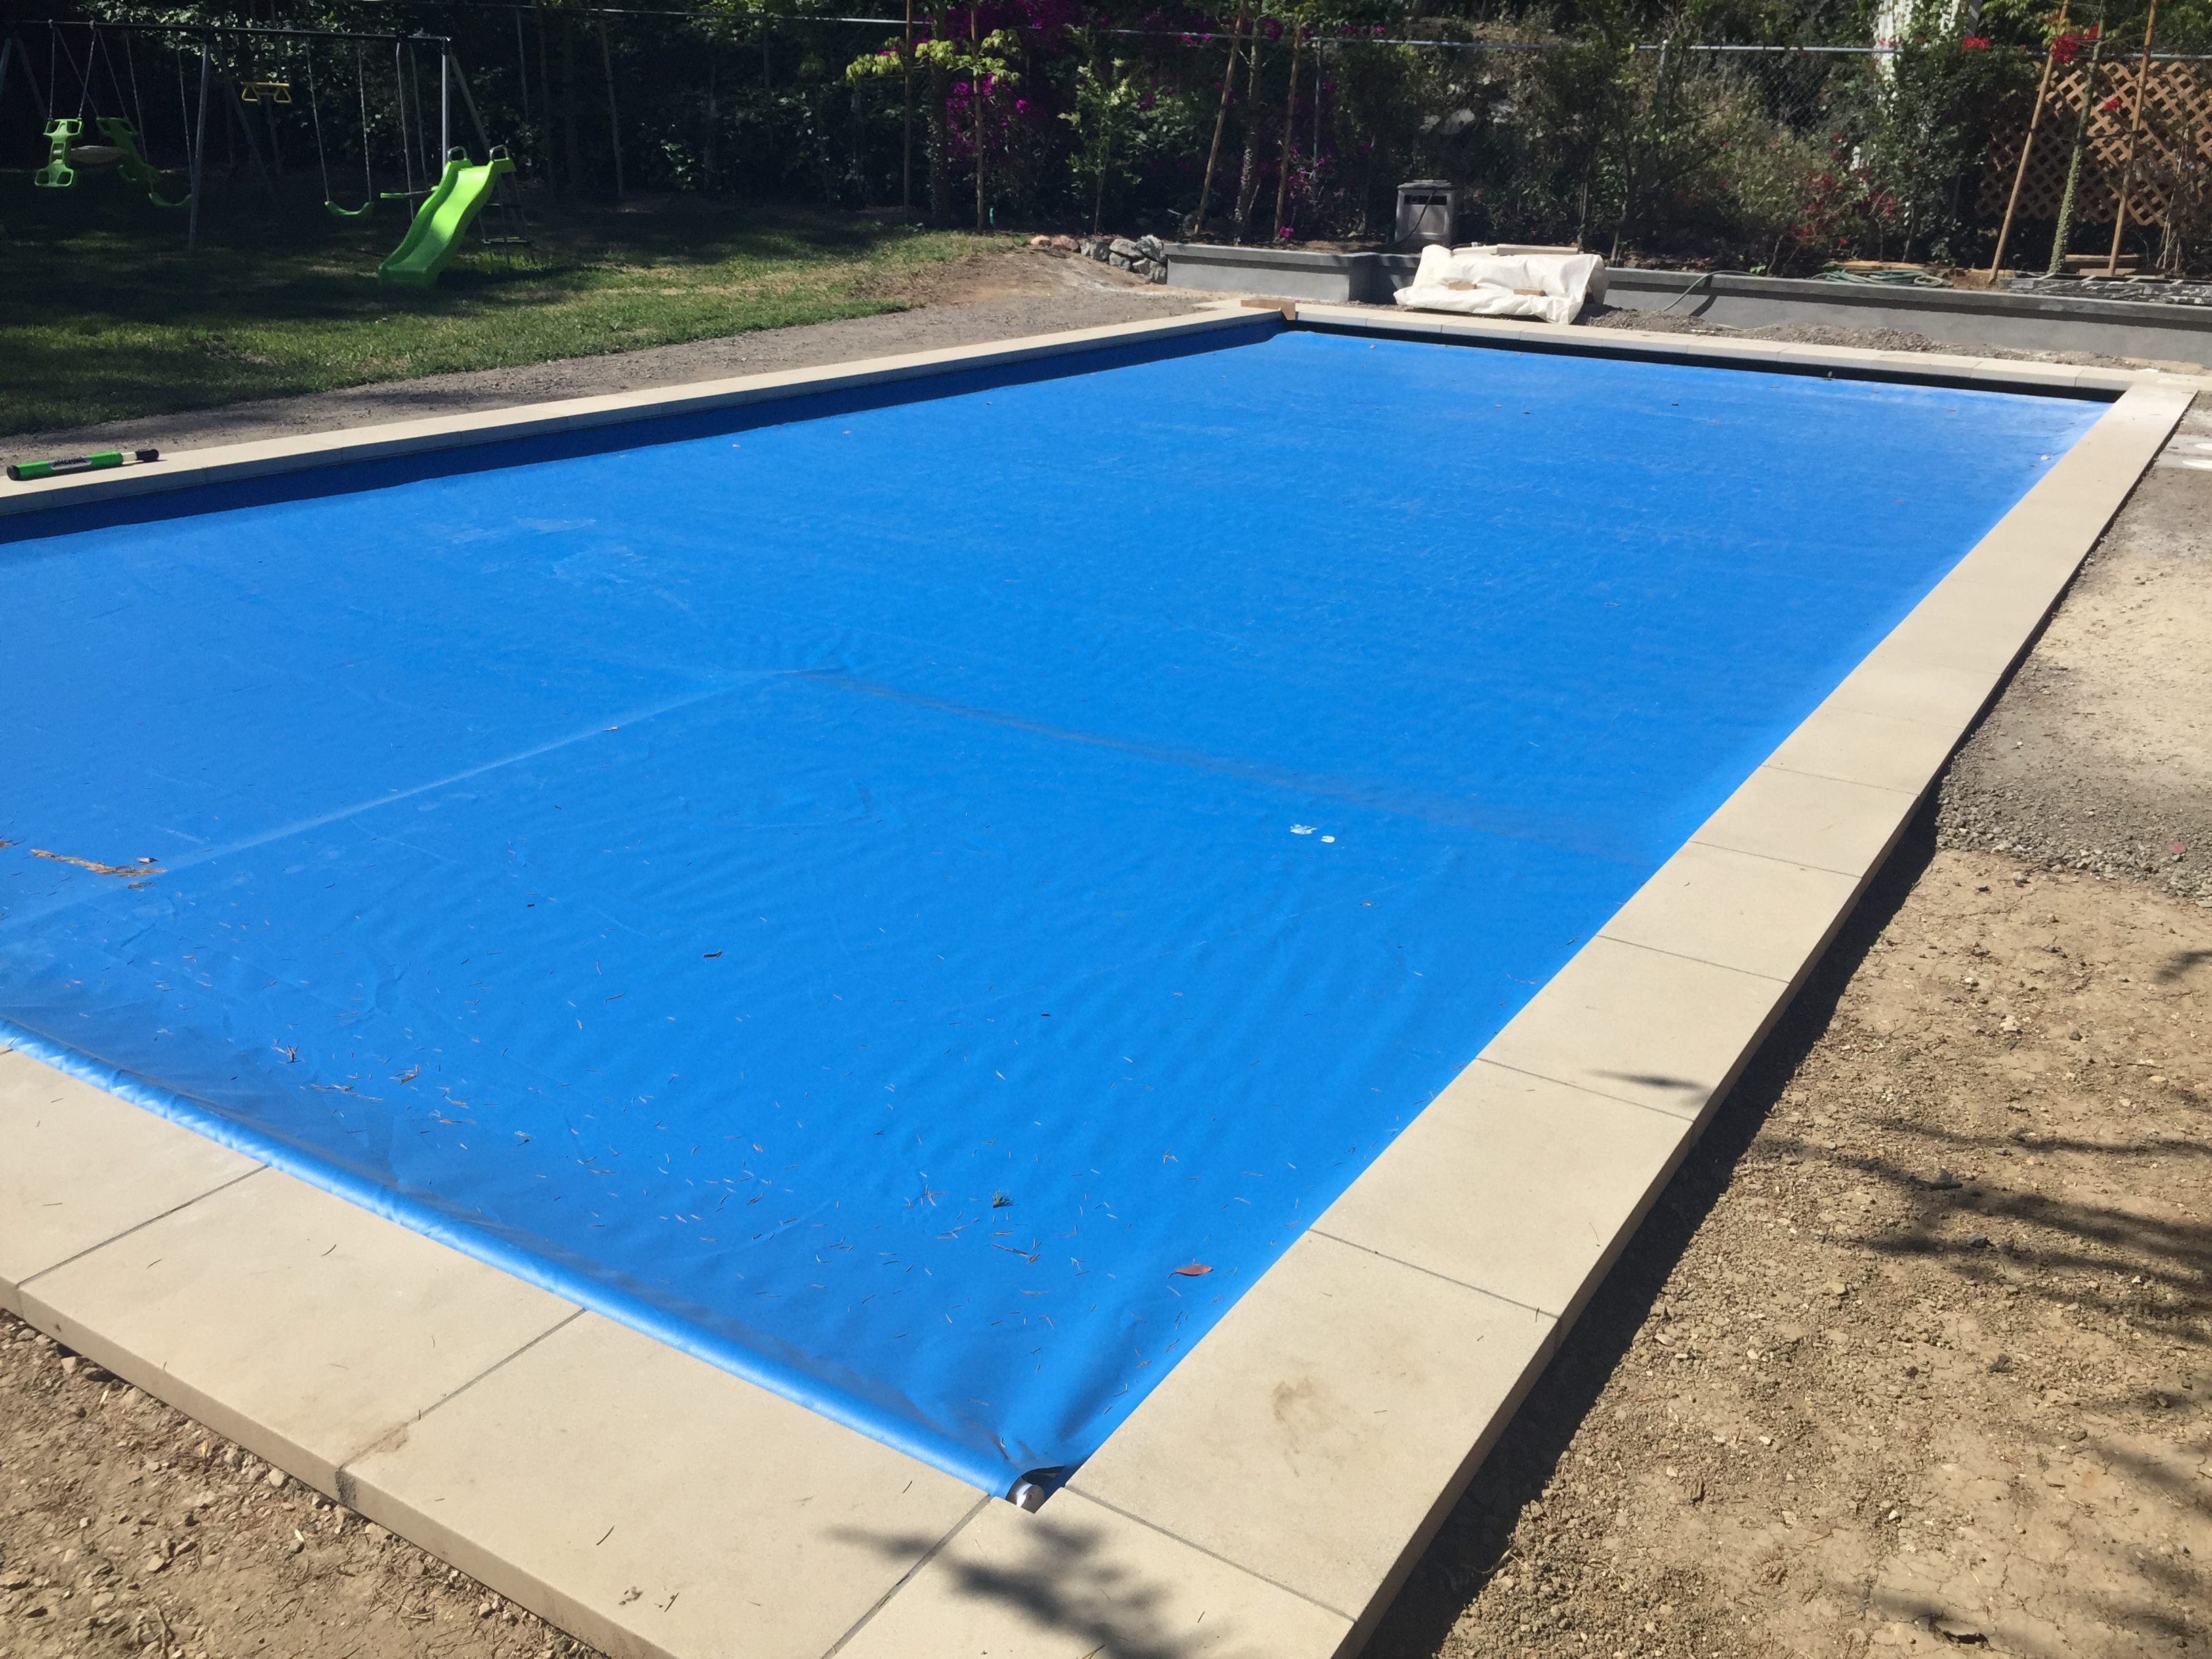 Full Pool Cover